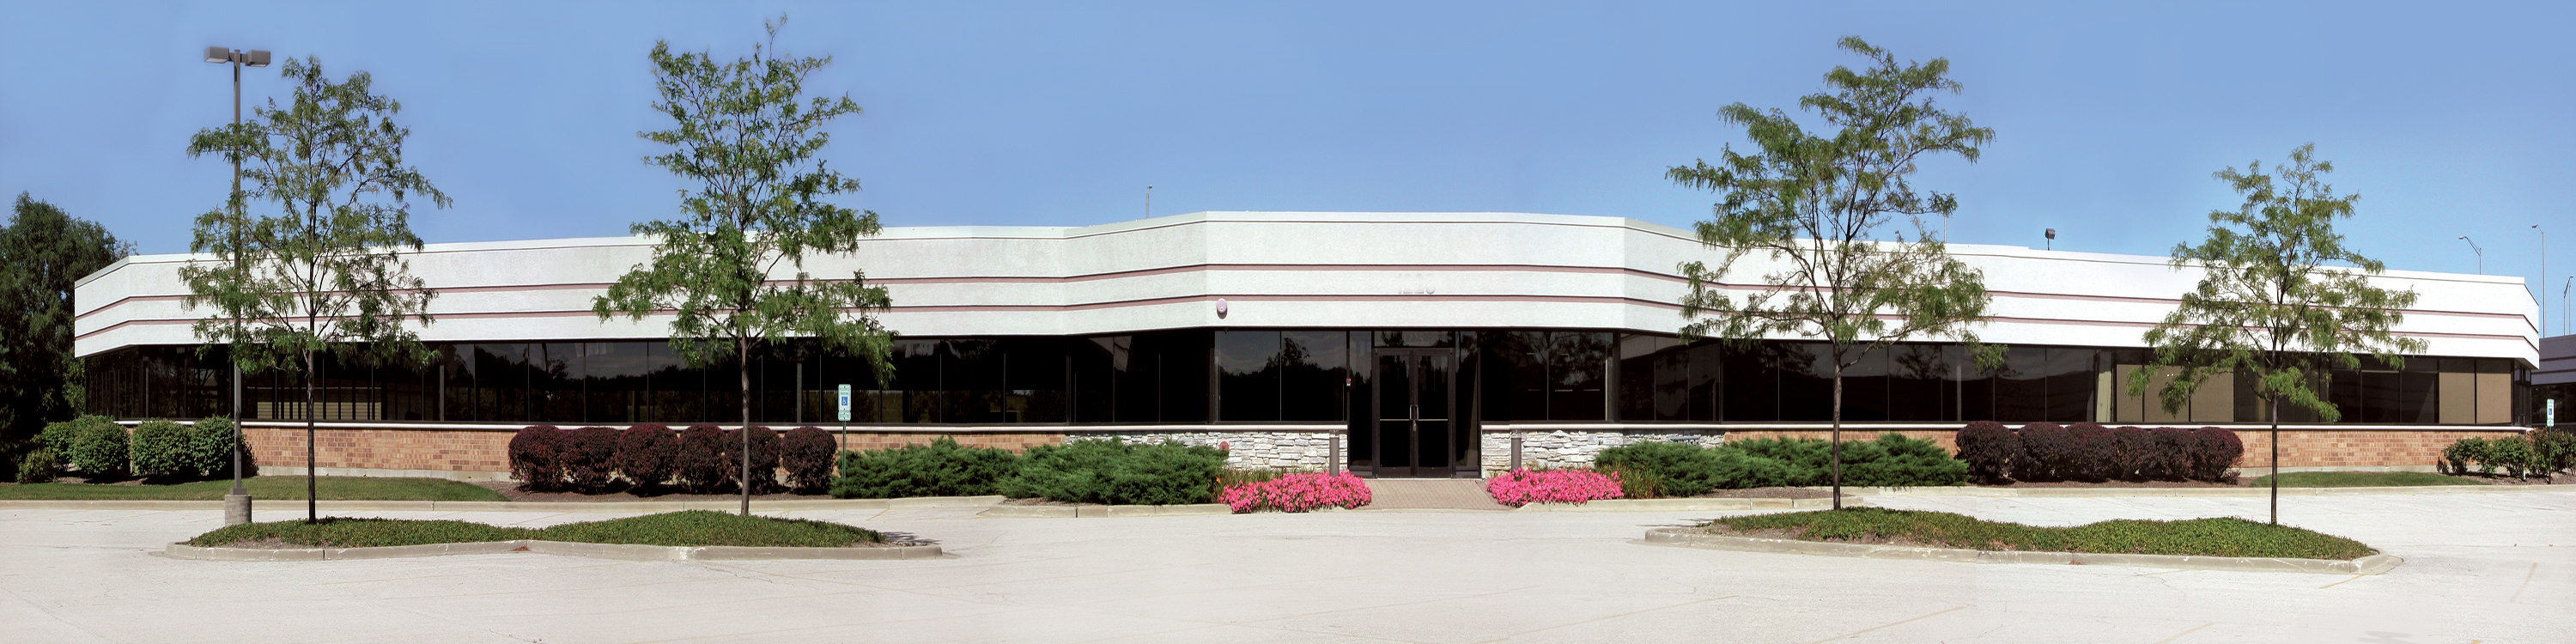 1025 Tri State Parkway, Grand Tri State Corporate Centre – 43,224 Sq. Ft. Available